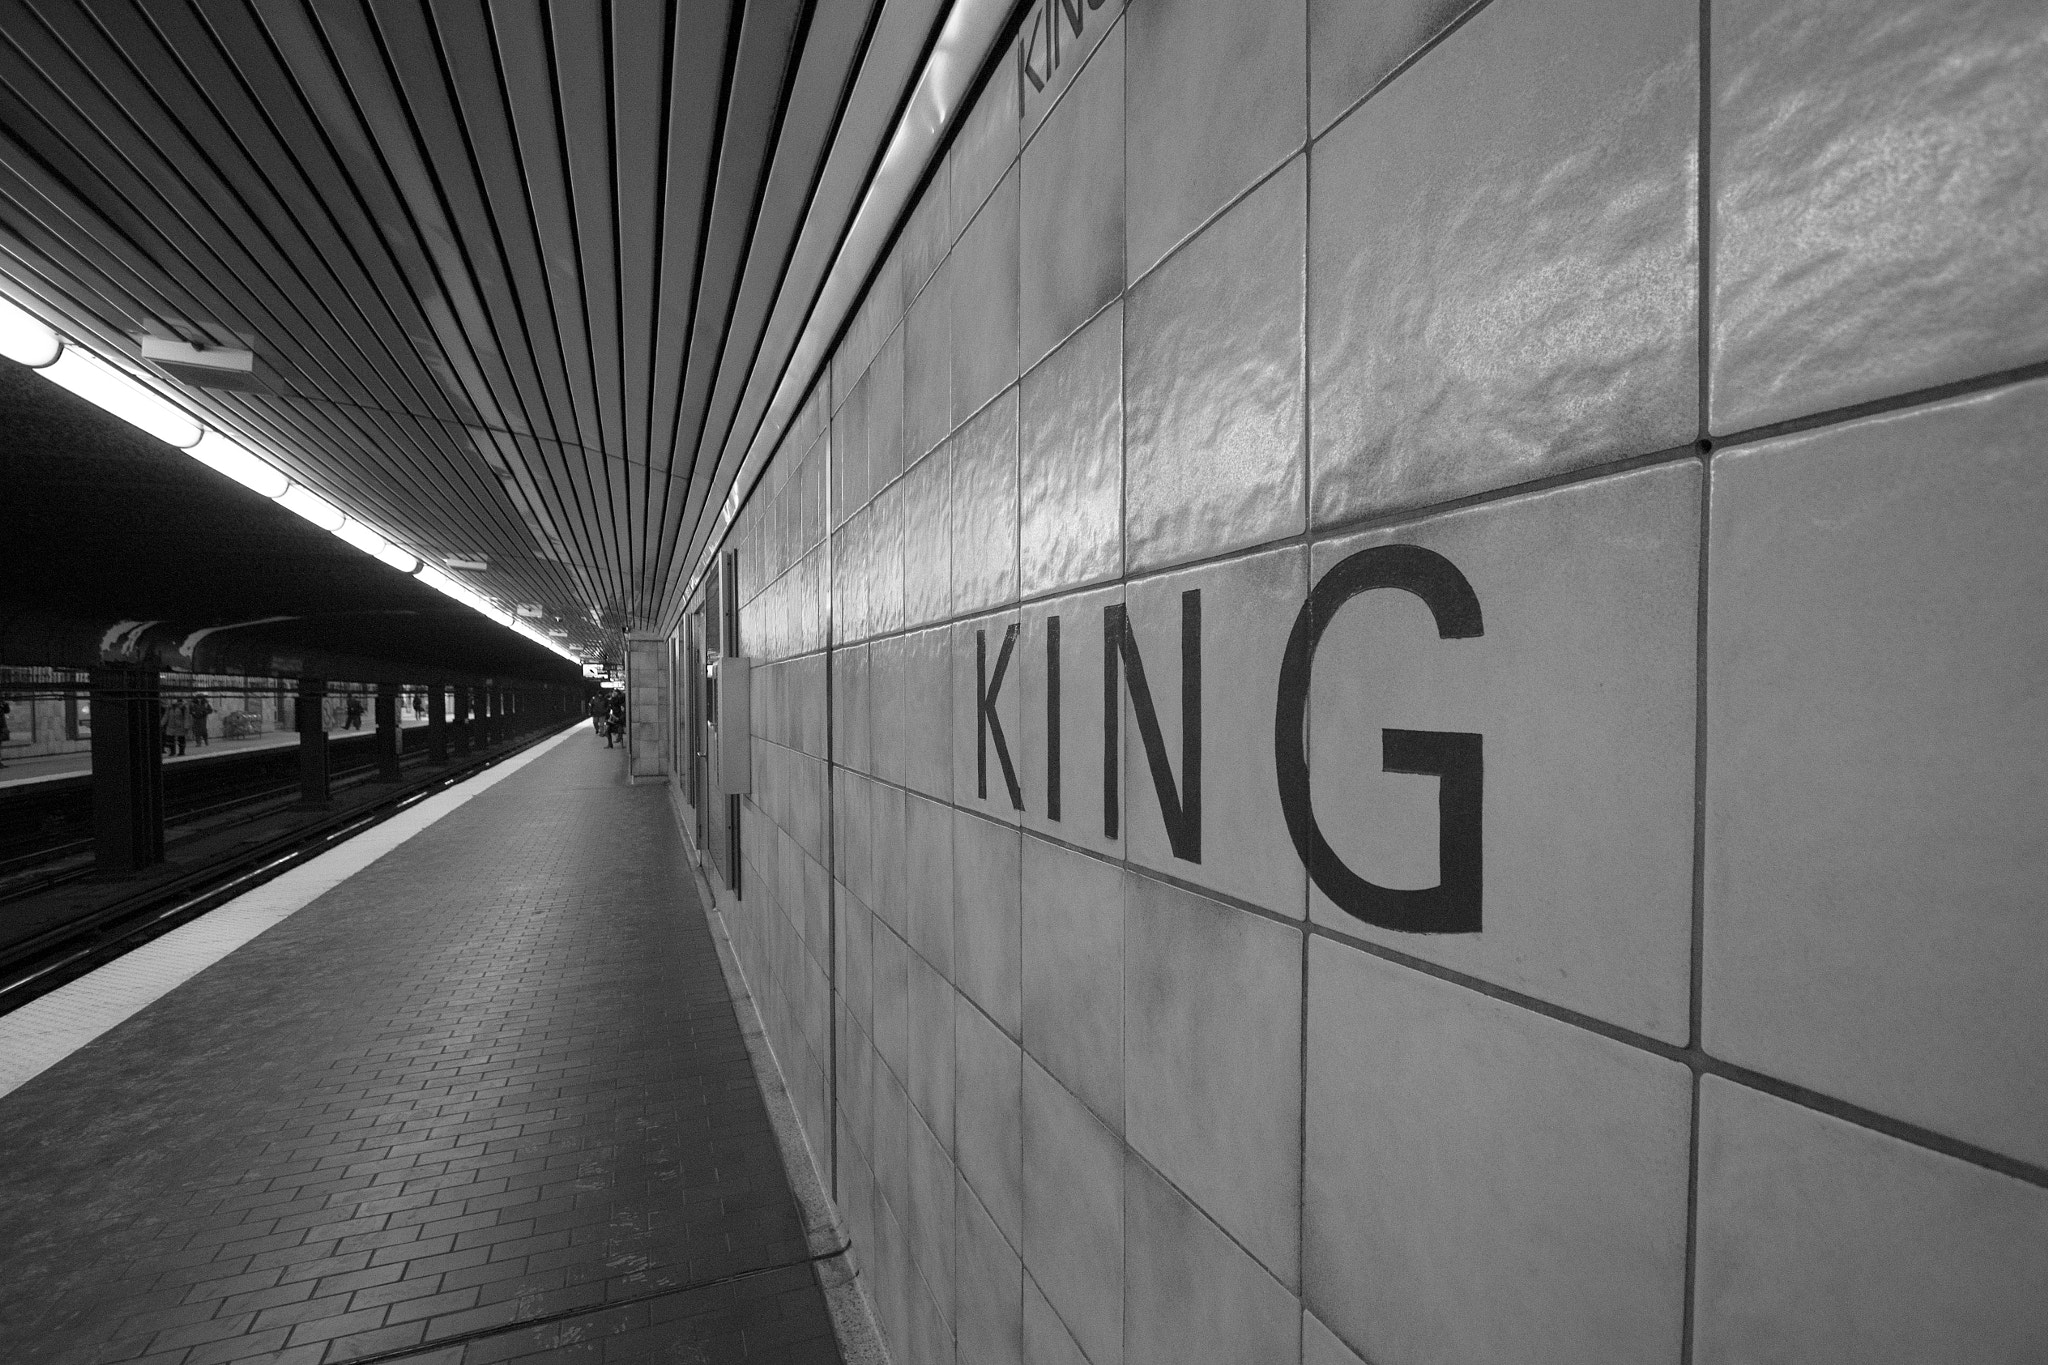 Photograph King Station by Ash Furrow on 500px